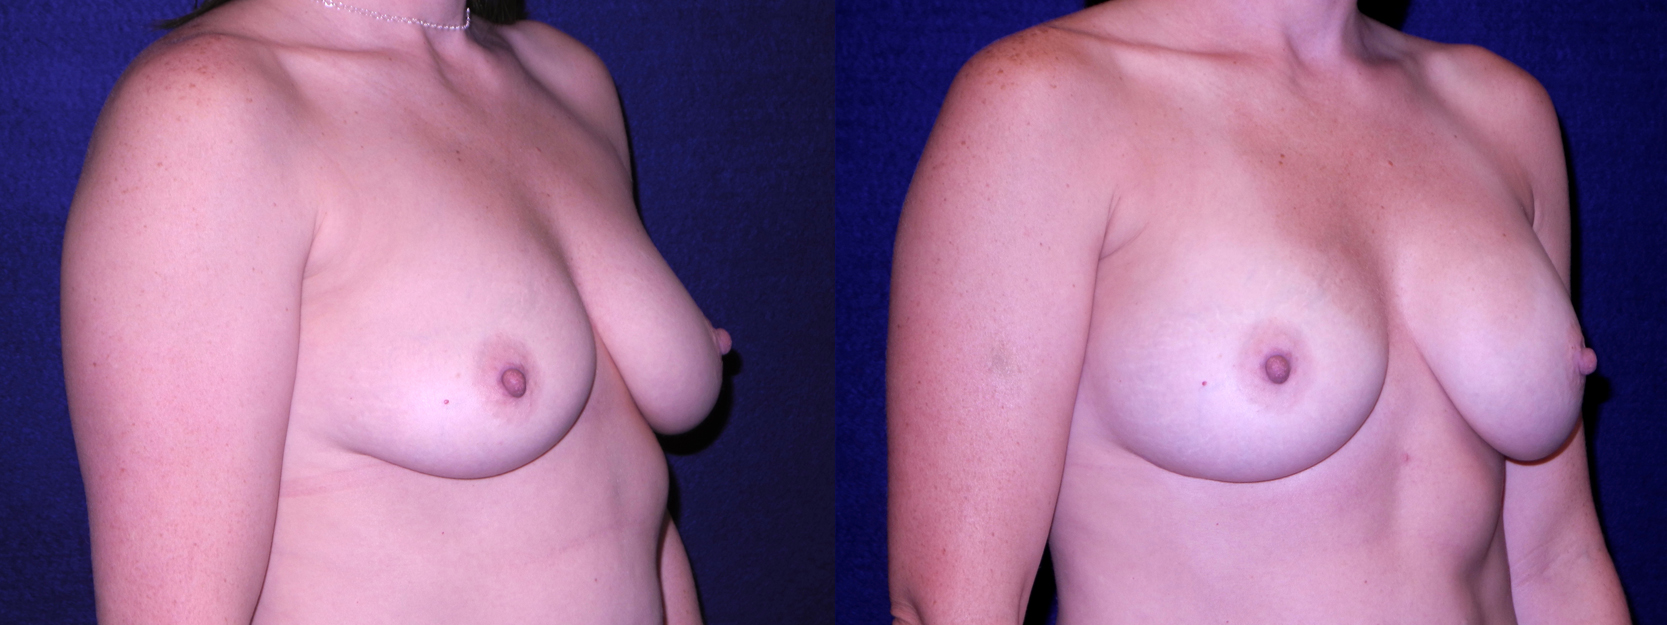 Right 3/4 View - Breast Augmentation